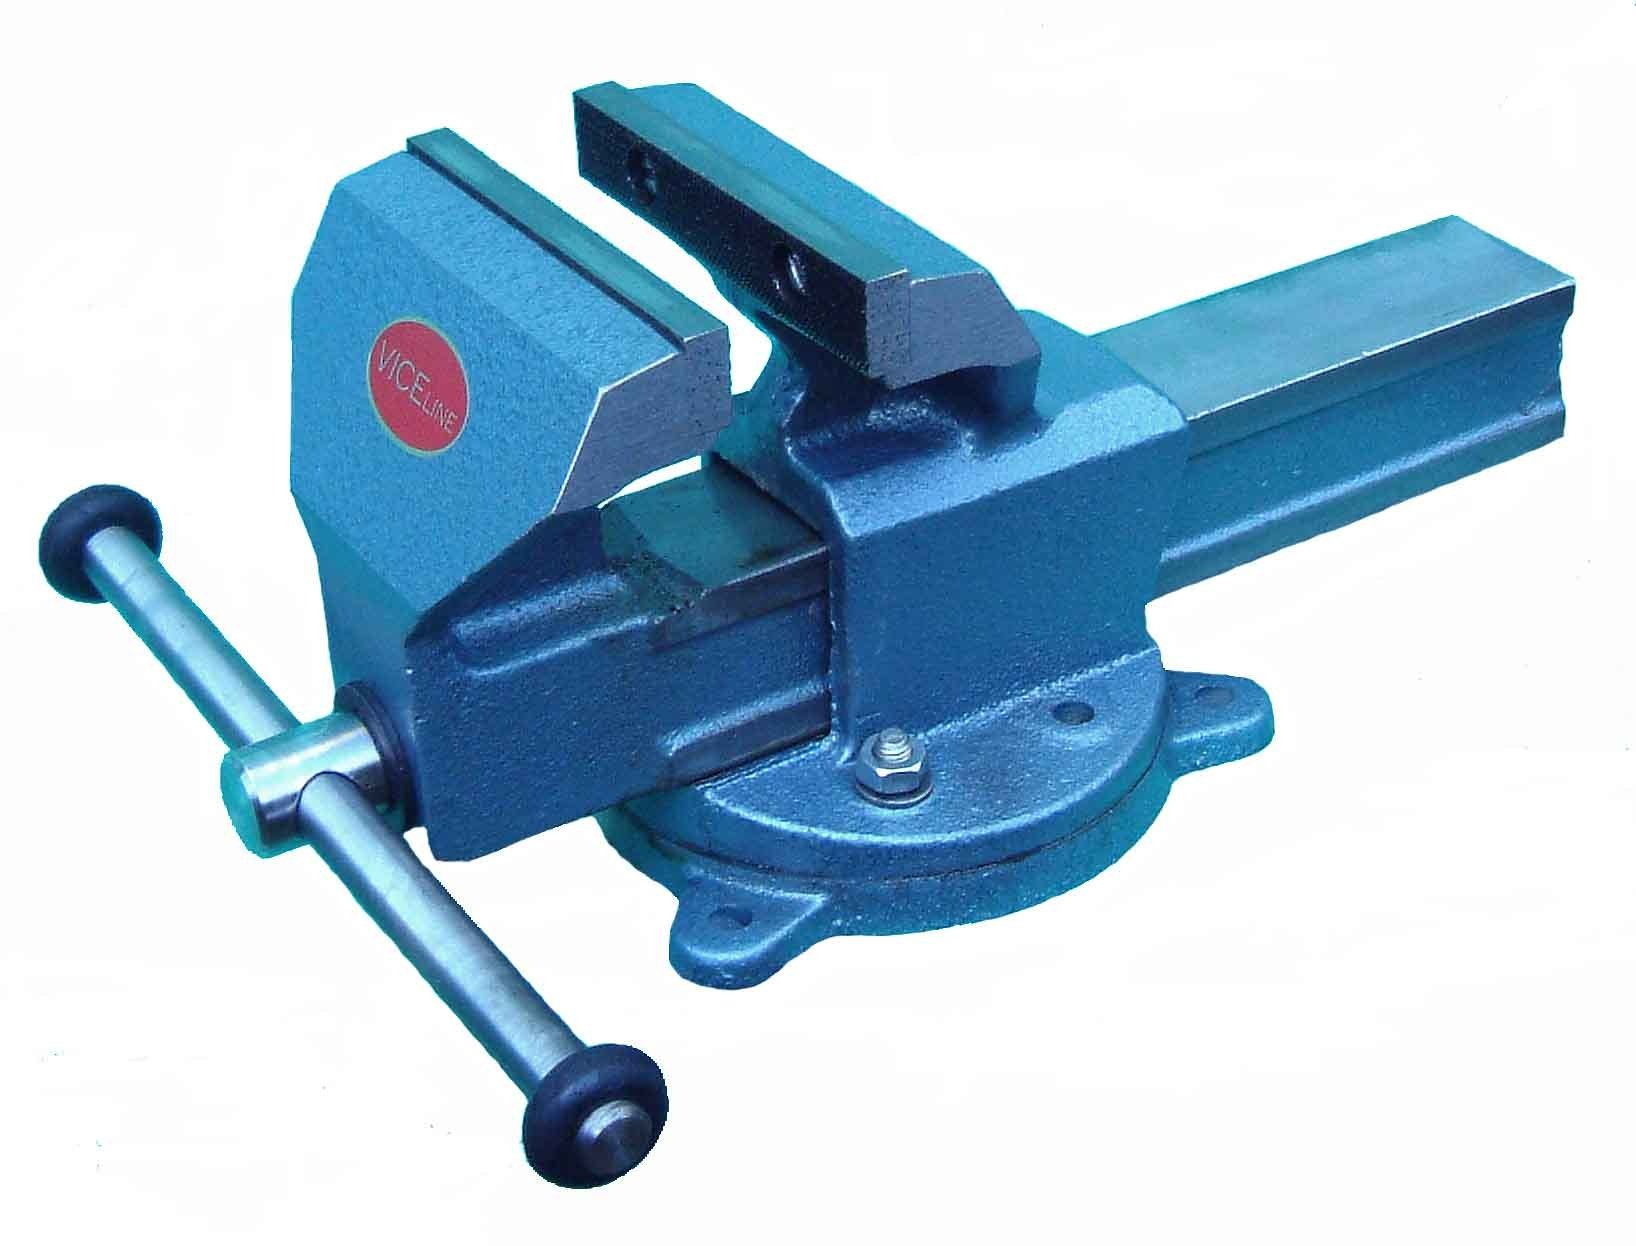 Bench Vise Bench vice photo, detailed